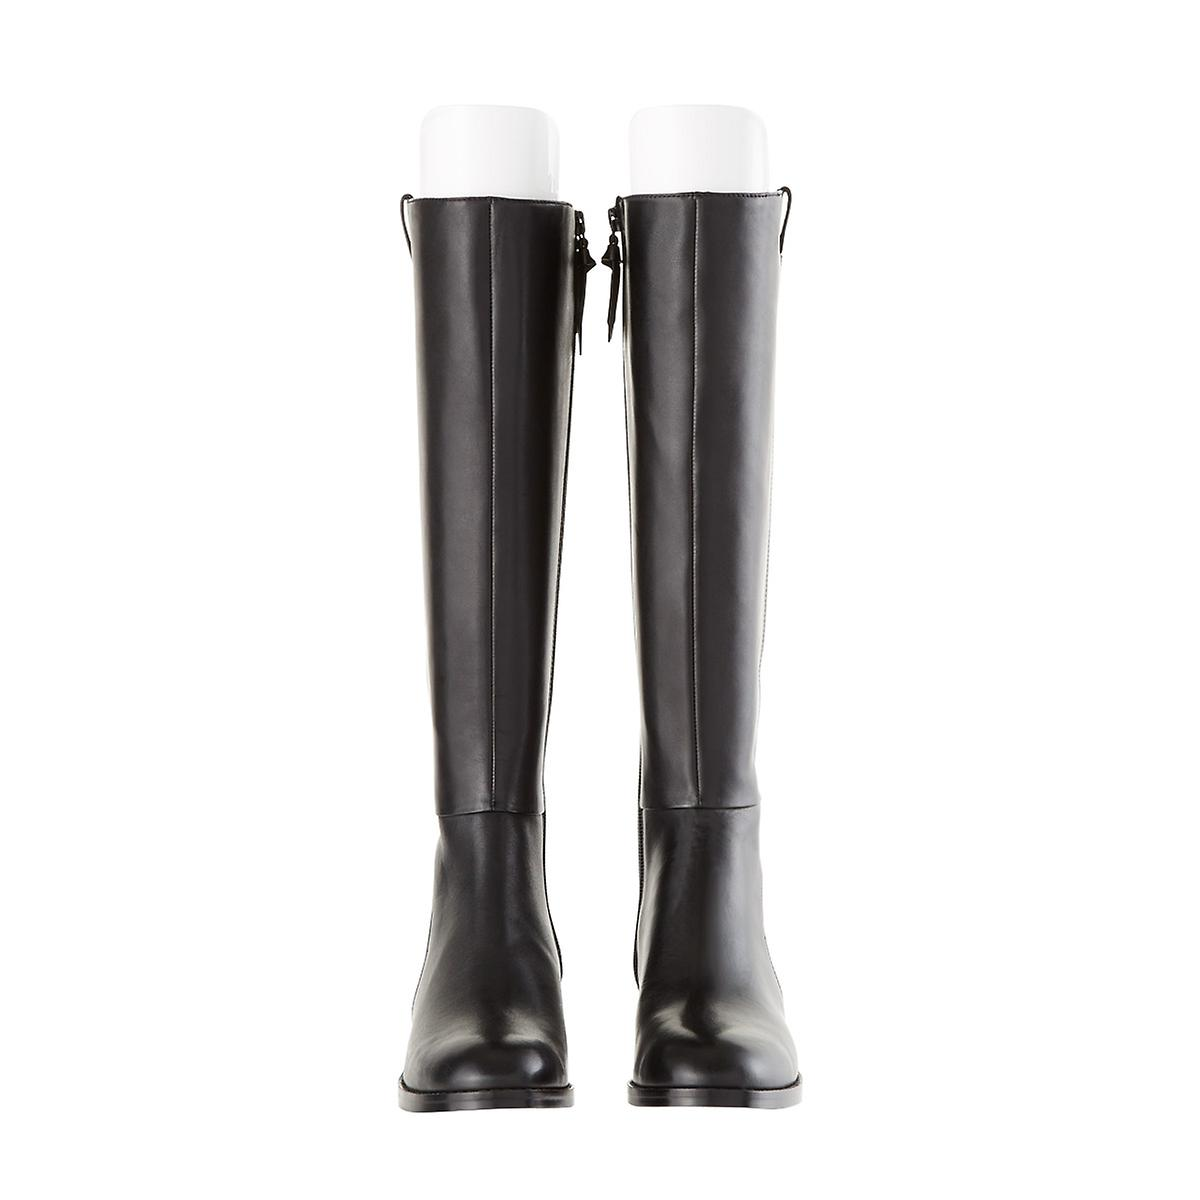 43d10368a Boot Shapers - Normal & Tall Boot Shapers | The Container Store